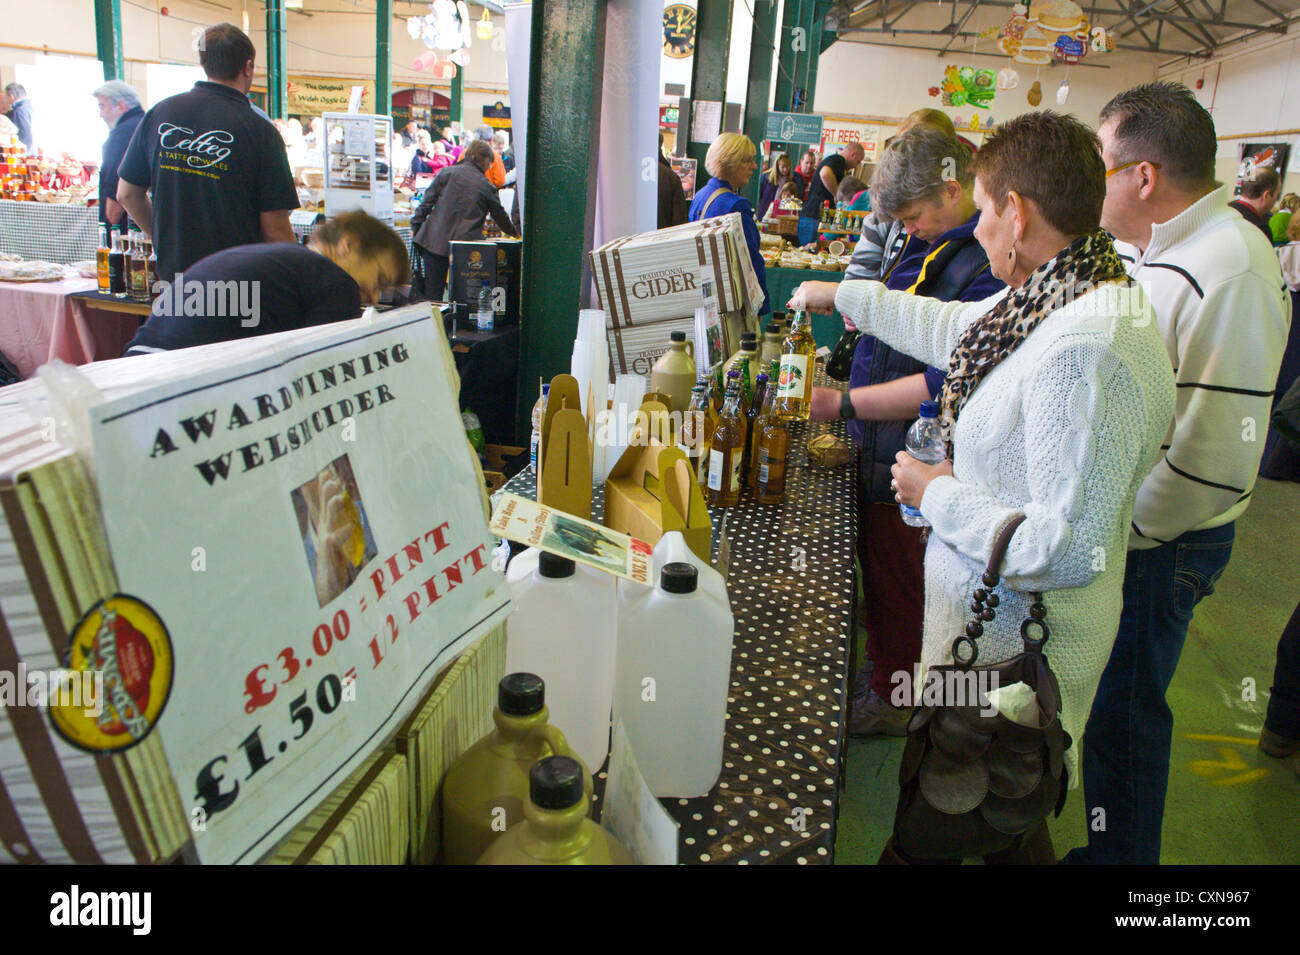 Cider for sale at Brecon Beacons National Park Food Festival in Market Hall Brecon Powys South Wales UK Stock Photo